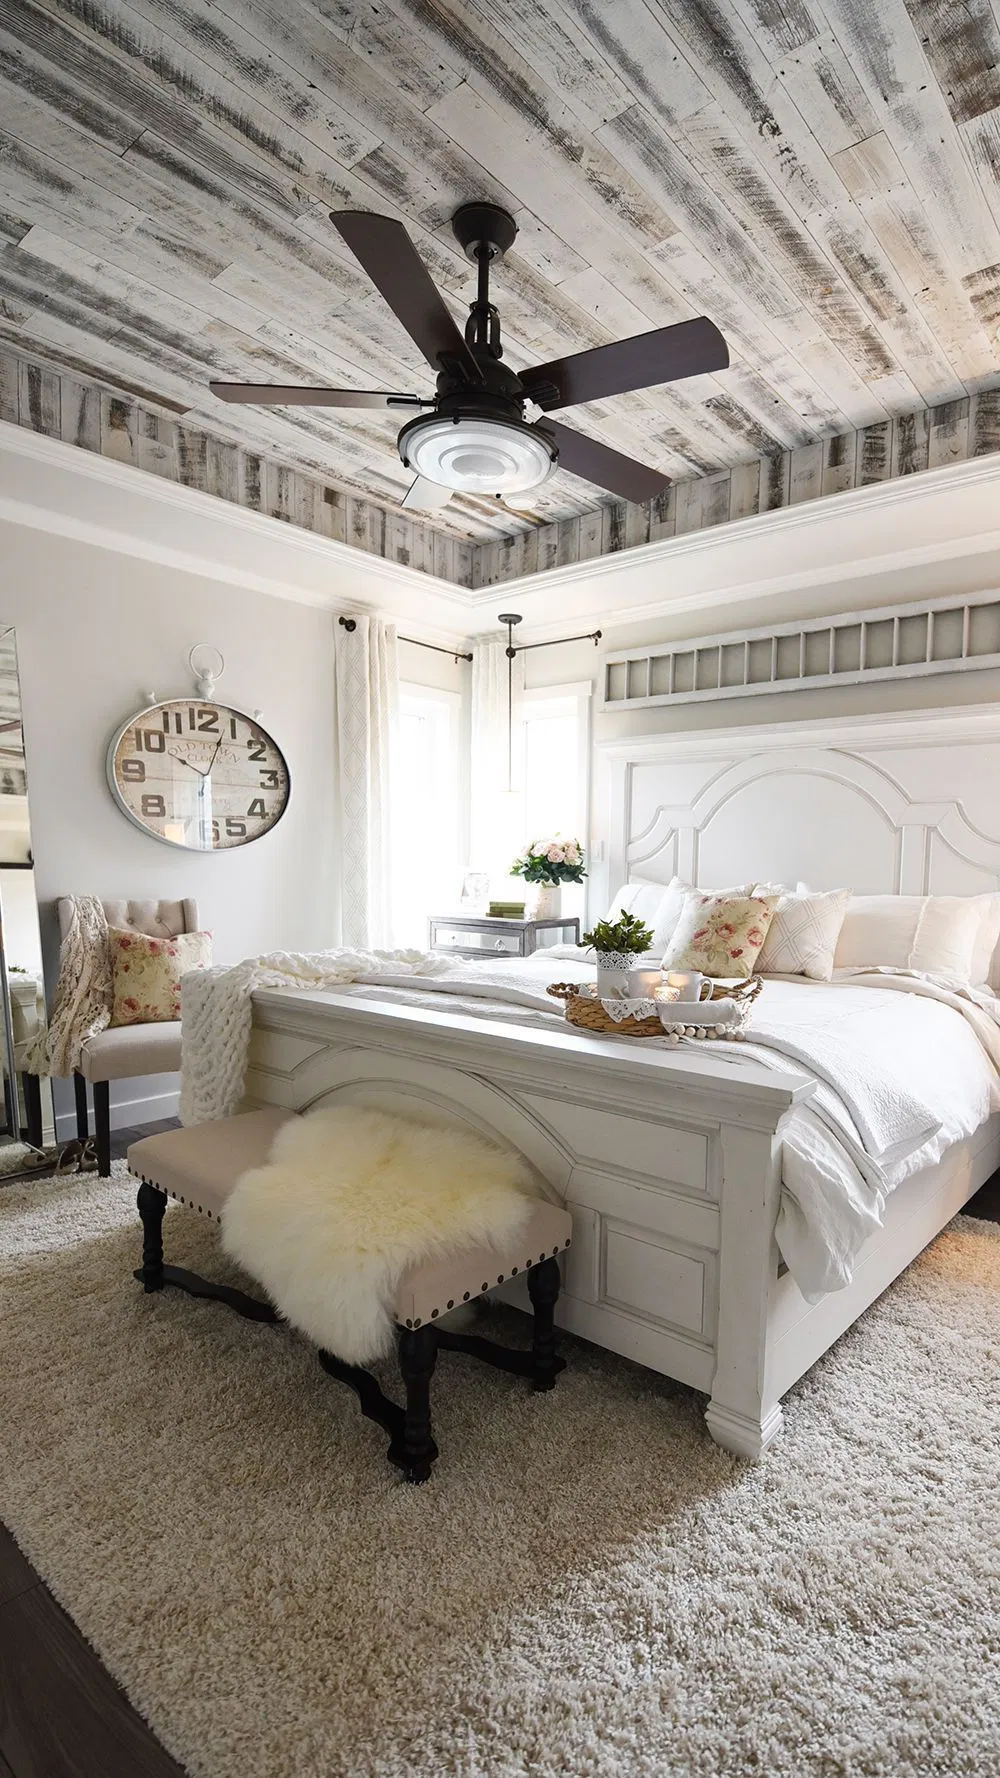 21 Best Farmhouse Guest Bedroom Decor Ideas Designs In 2020 French Bedroom Design Country Style Bedroom Country Style Bedroom Decor